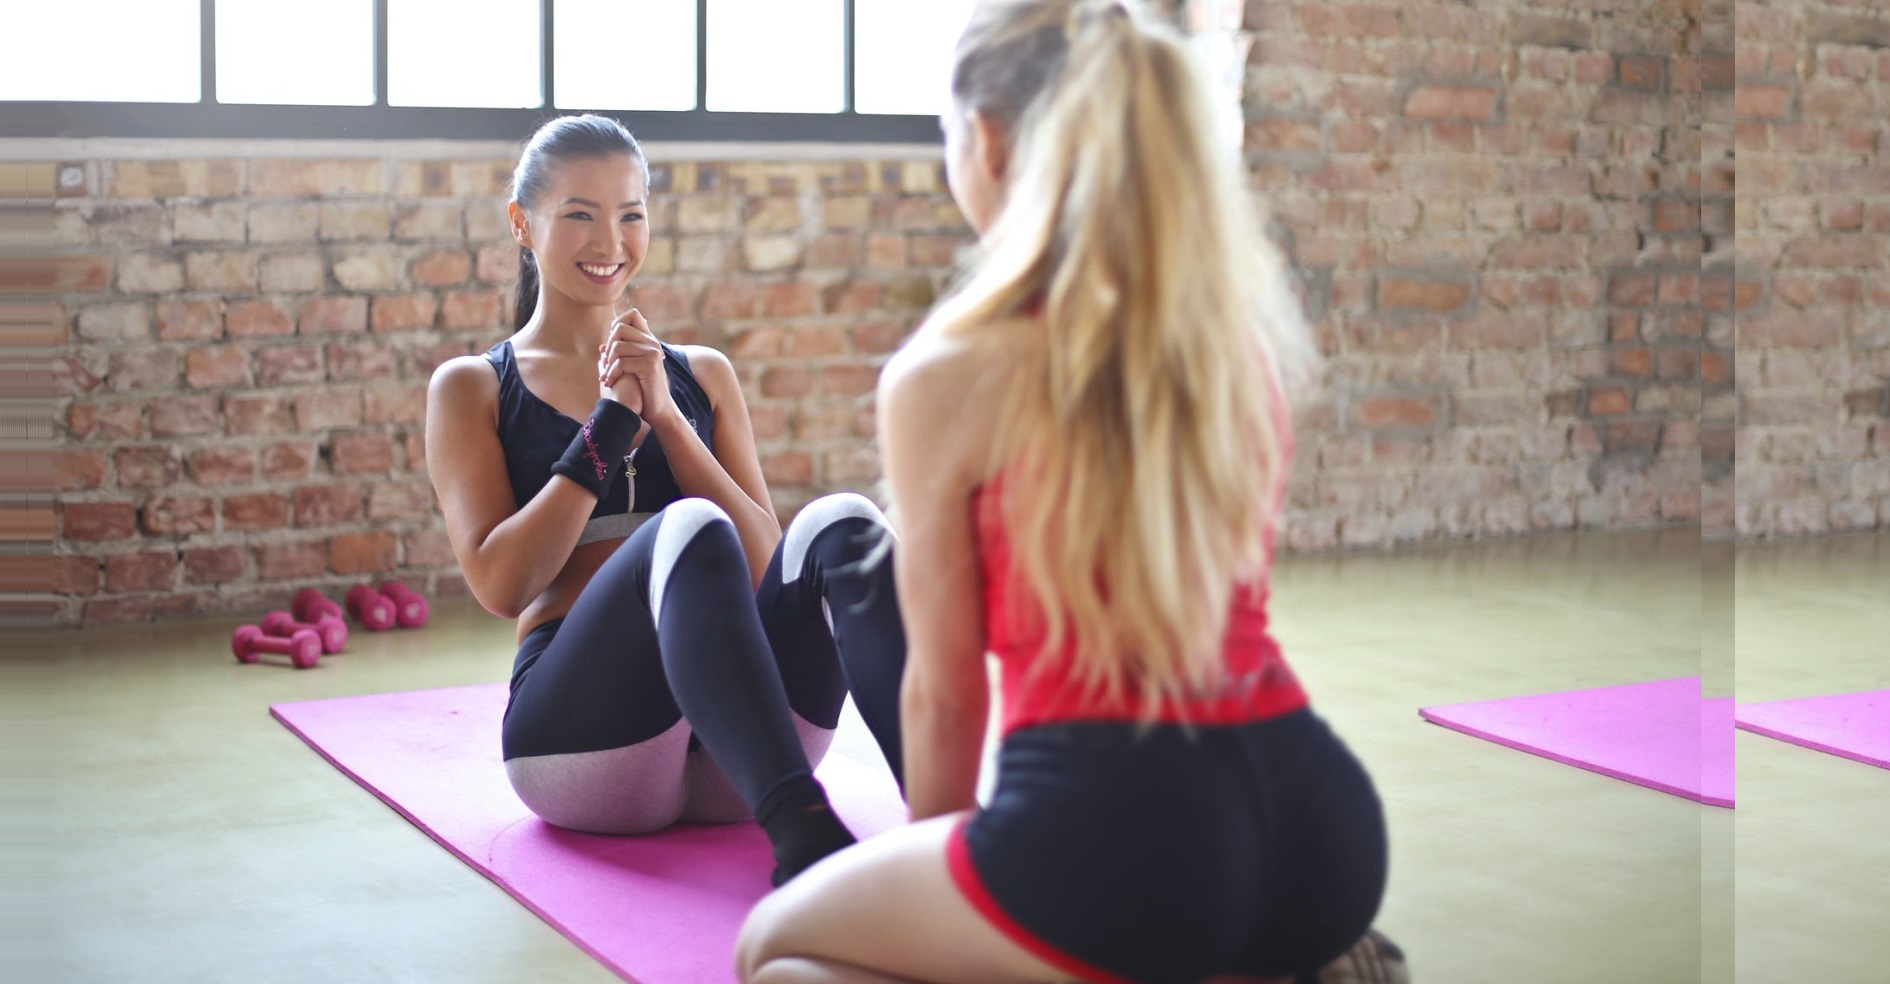 5 Essential Things You Should Do After Every Workout